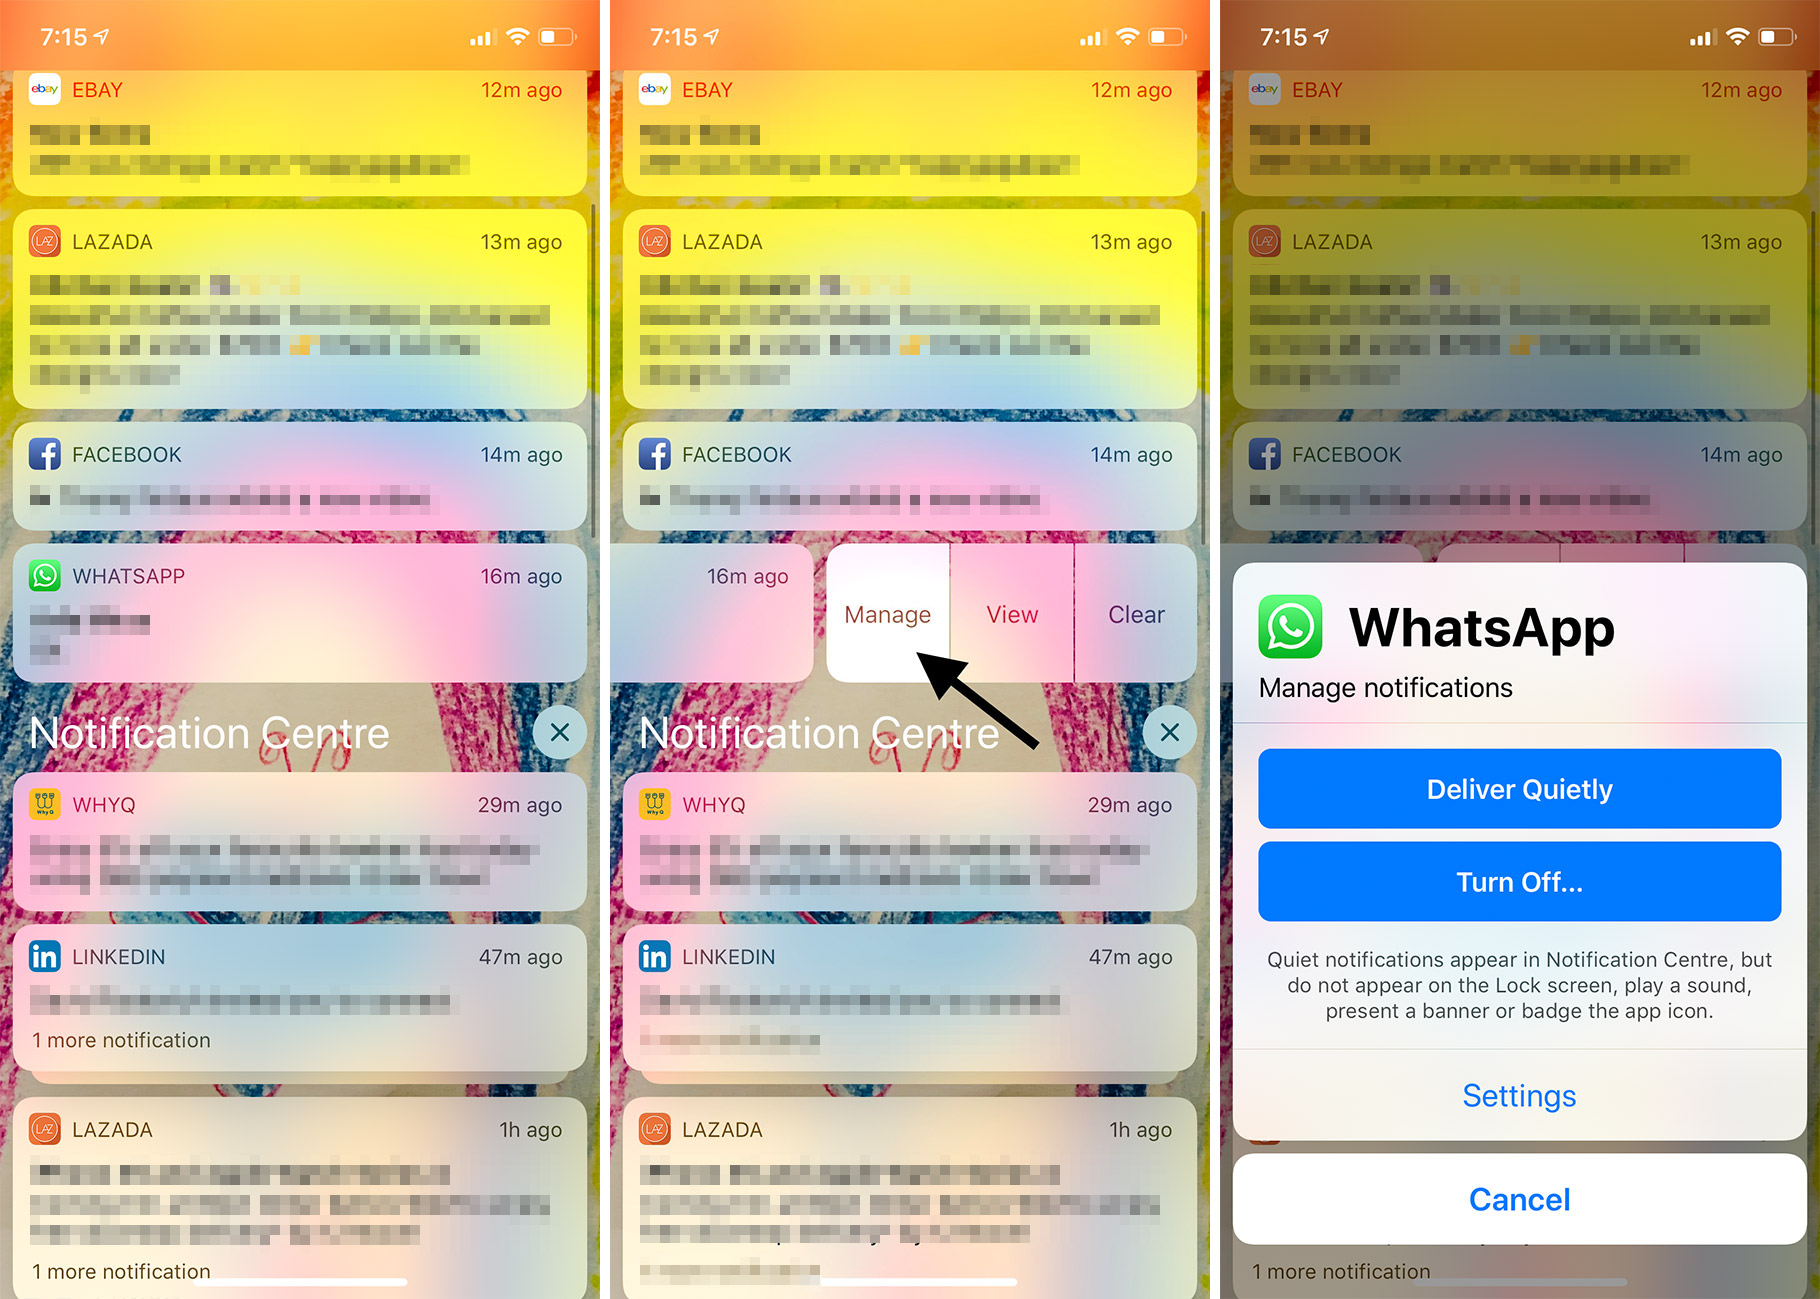 iOS 12: What's New with Notifications 7